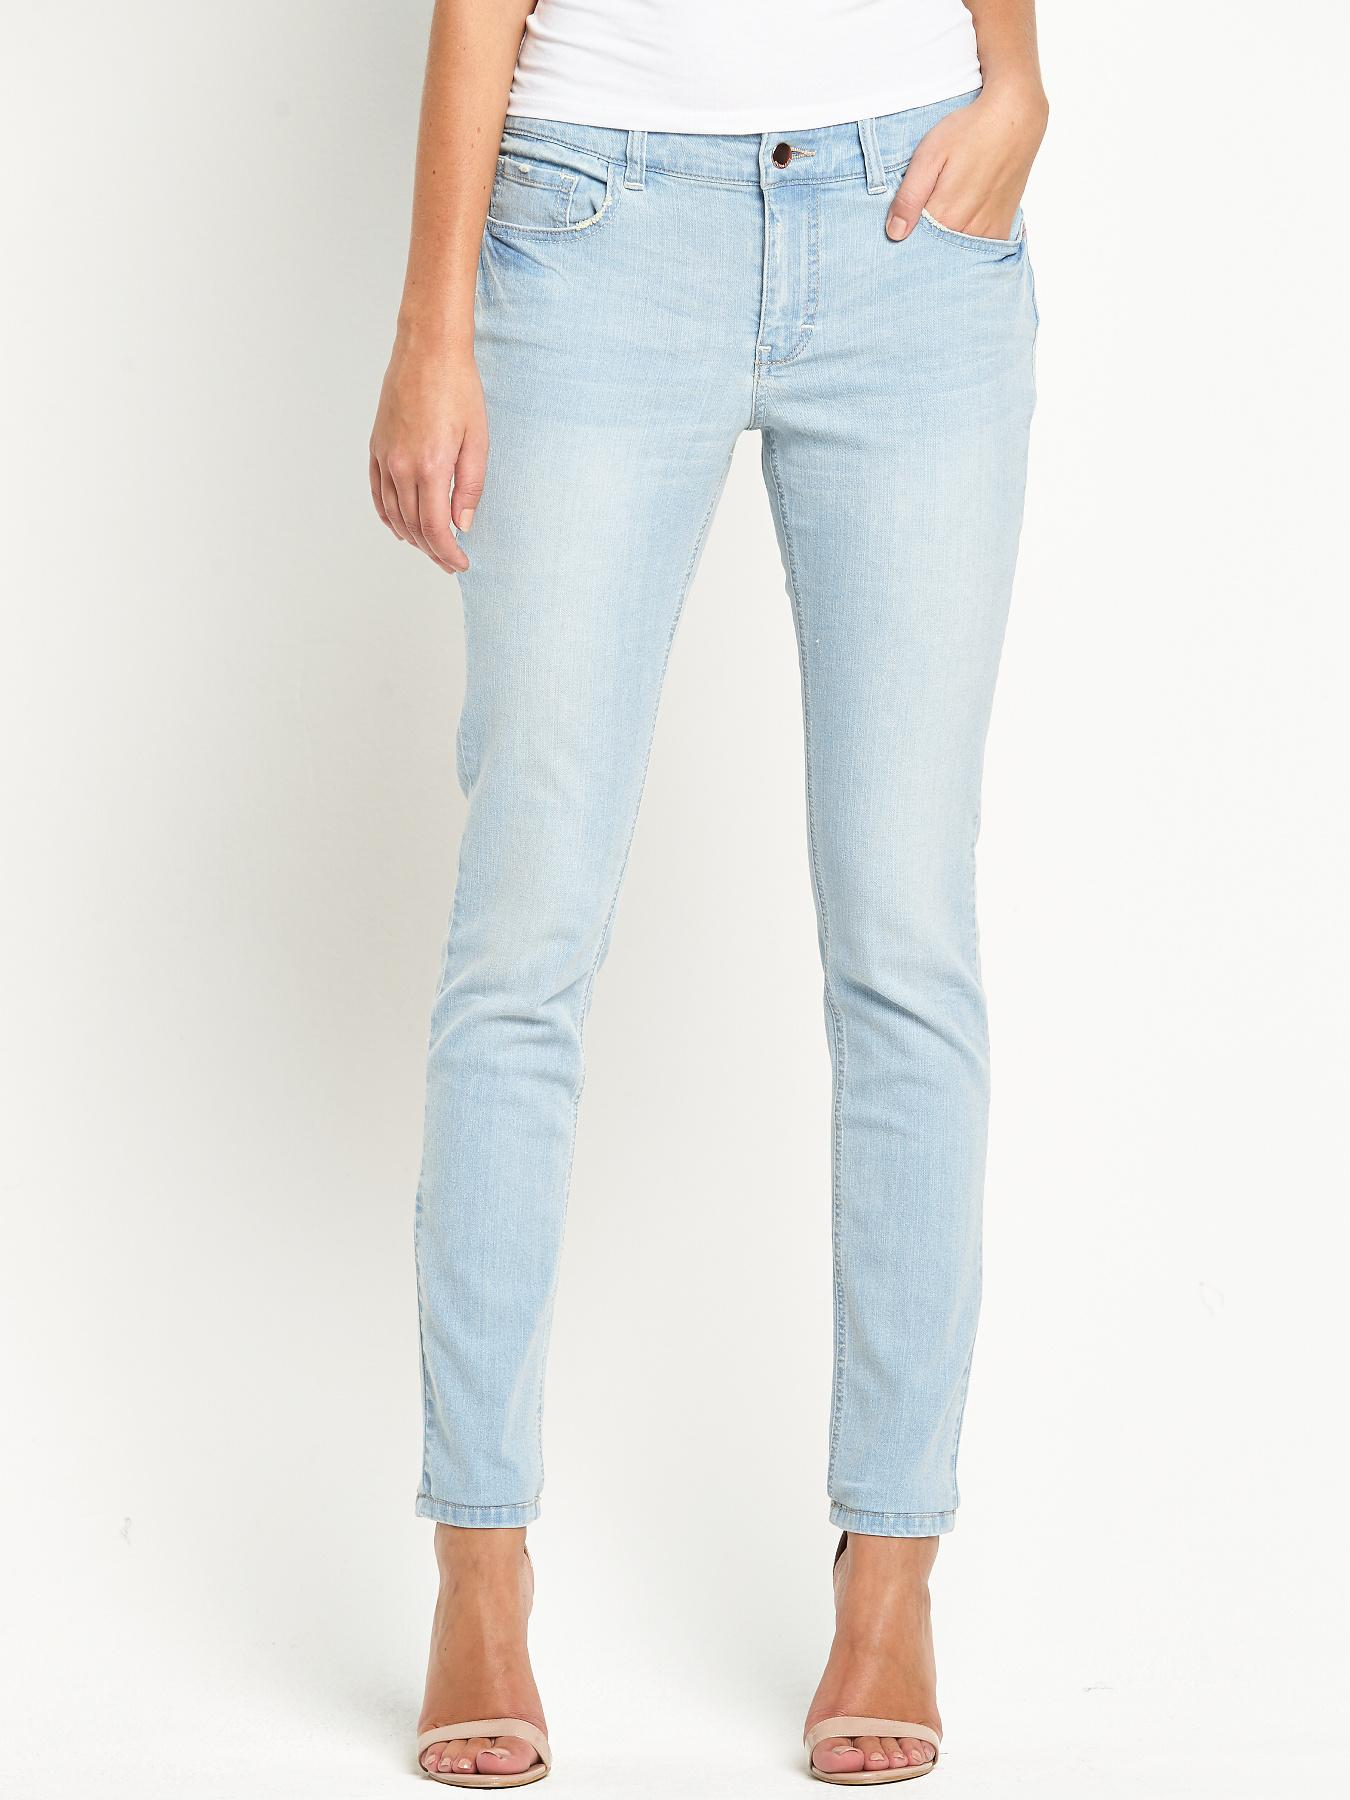 South 1932 Skinny Jeans